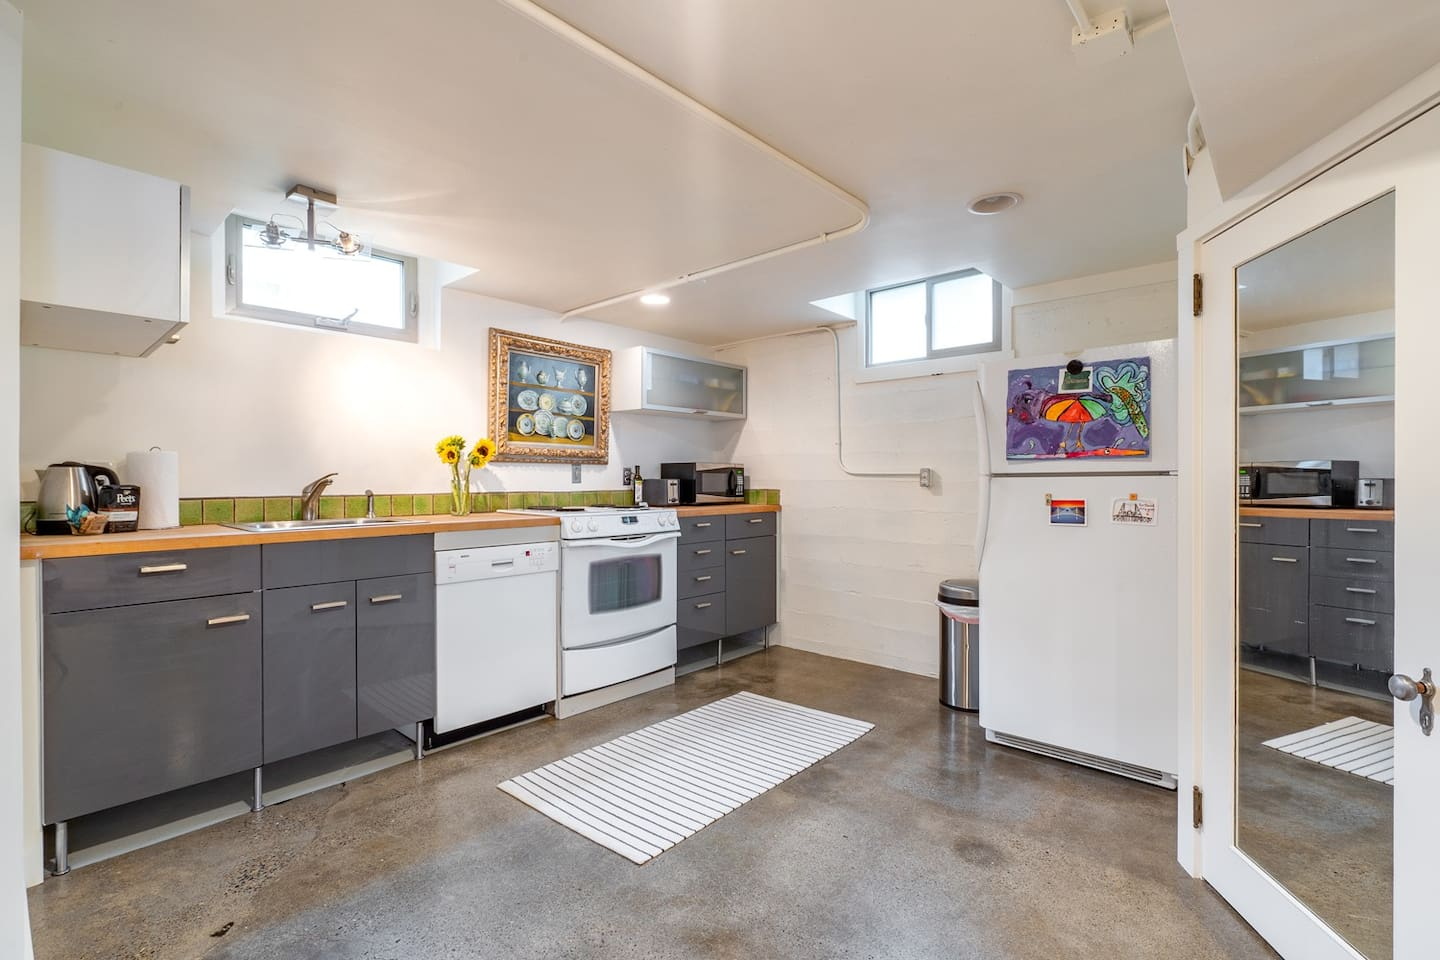 Full Kitchen with lots of Local extras to enjoy your stay